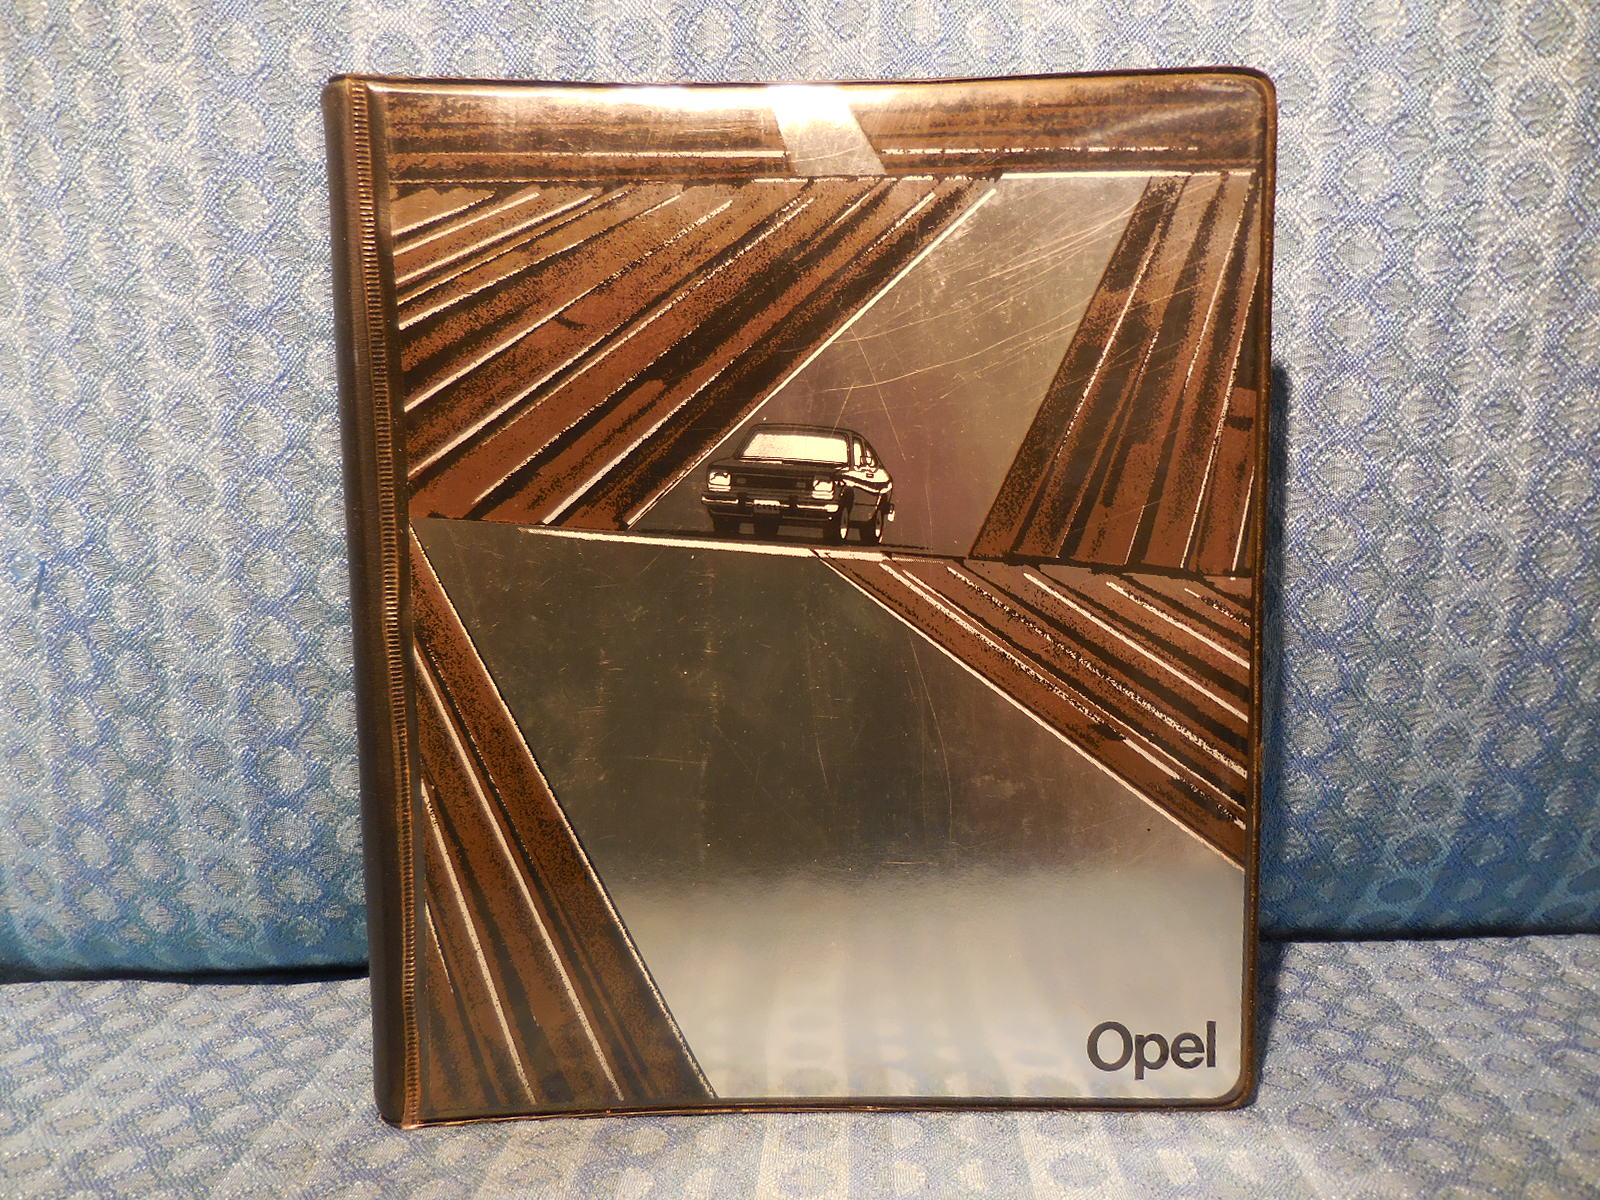 1979 opel original salesman 39 s product information manual nos texas parts llc antique auto parts. Black Bedroom Furniture Sets. Home Design Ideas